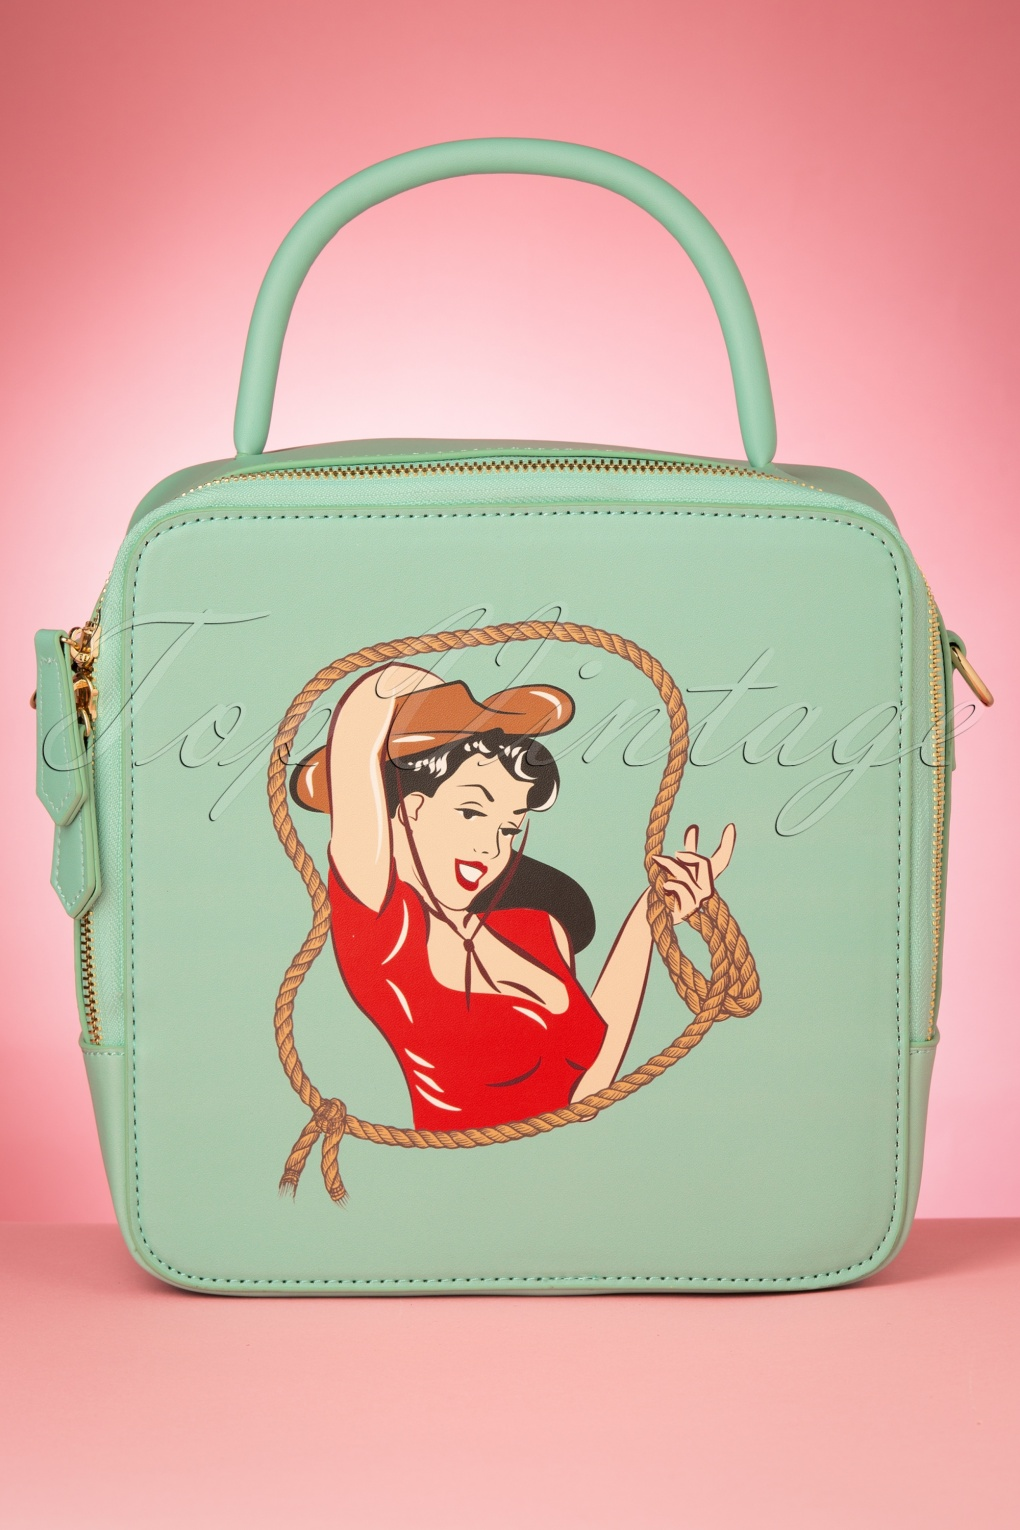 1950s Handbags, Purses, and Evening Bag Styles 50s Josie Cowgirl Bag in Teal £40.65 AT vintagedancer.com